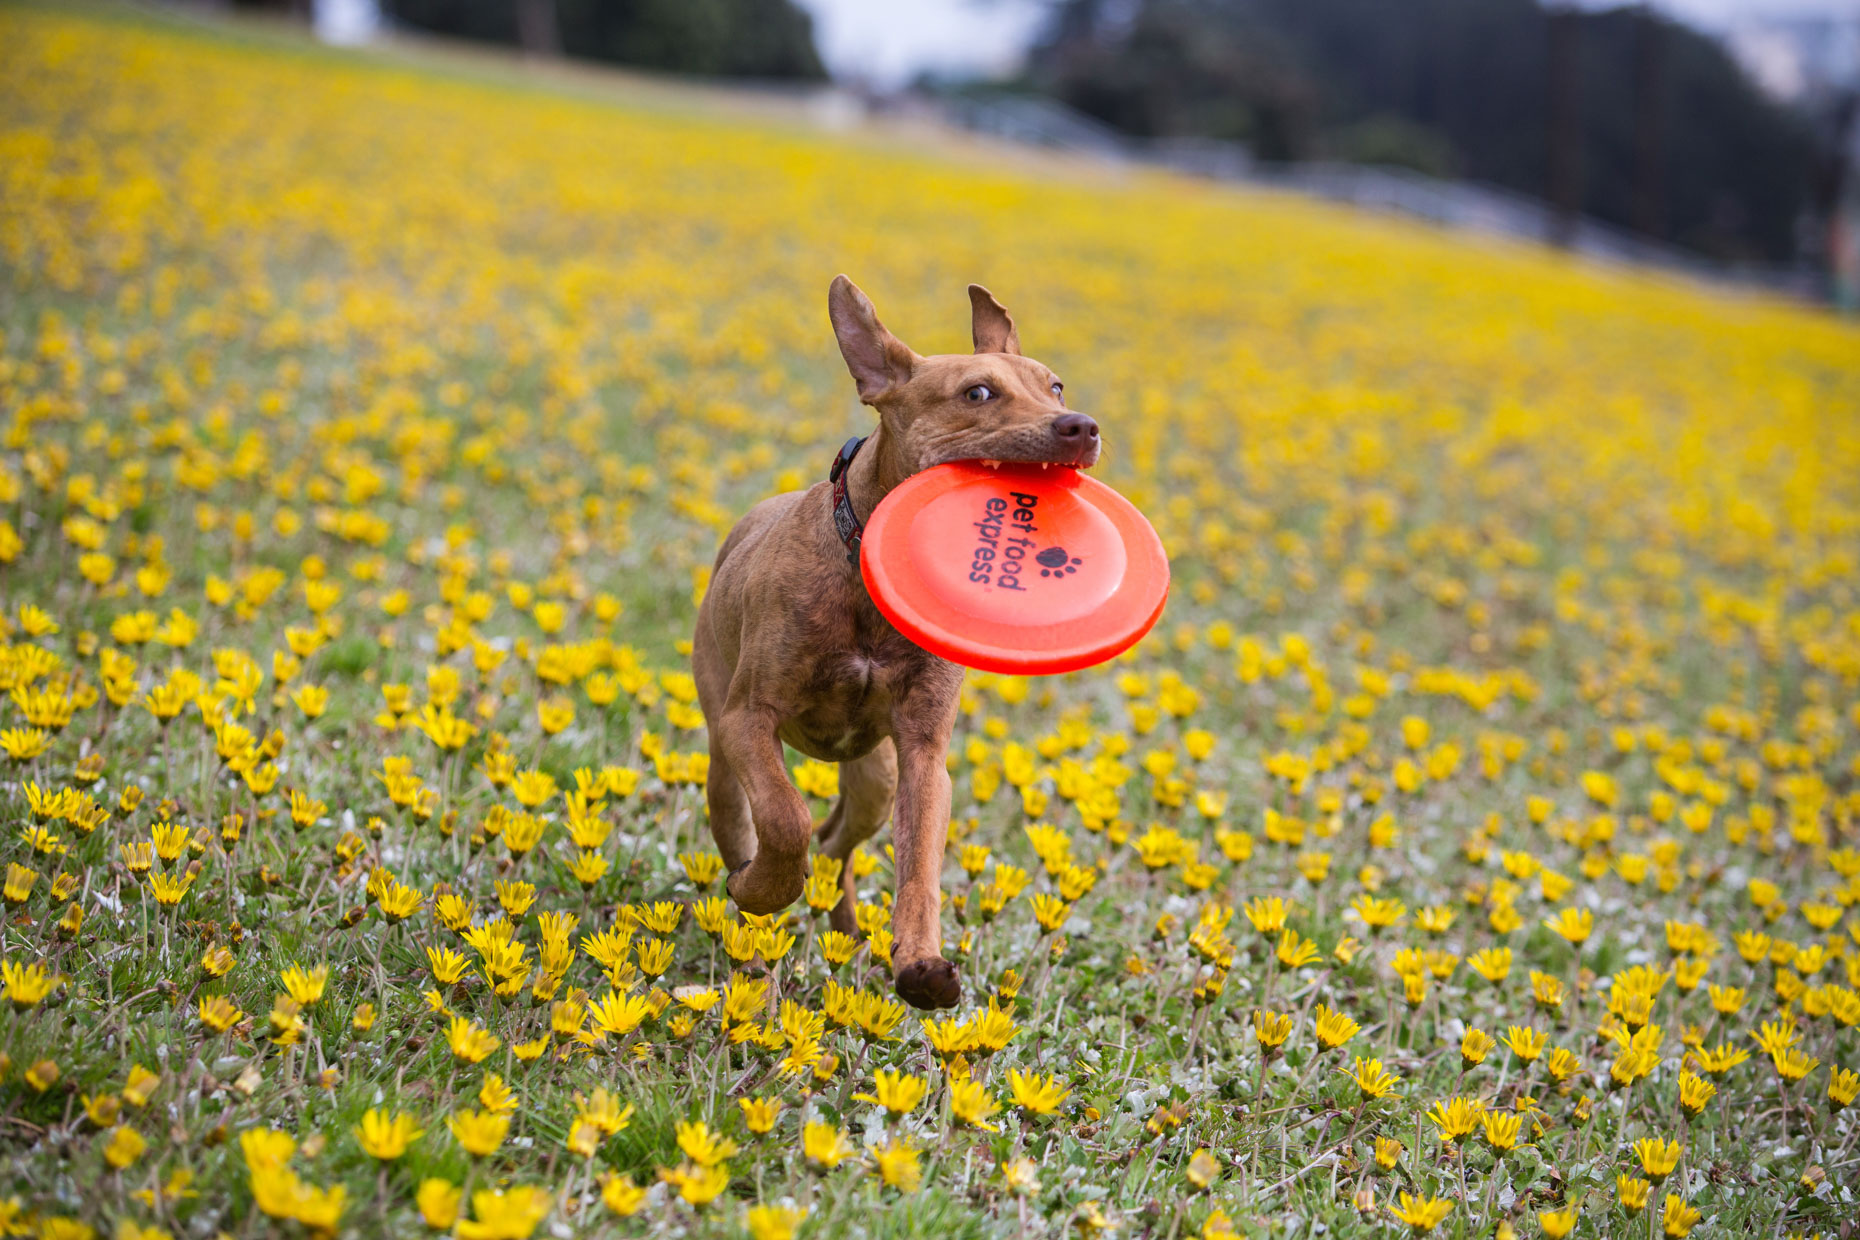 Dog Advertising Photography | Dog Running Through Dandelions by Mark Rogers